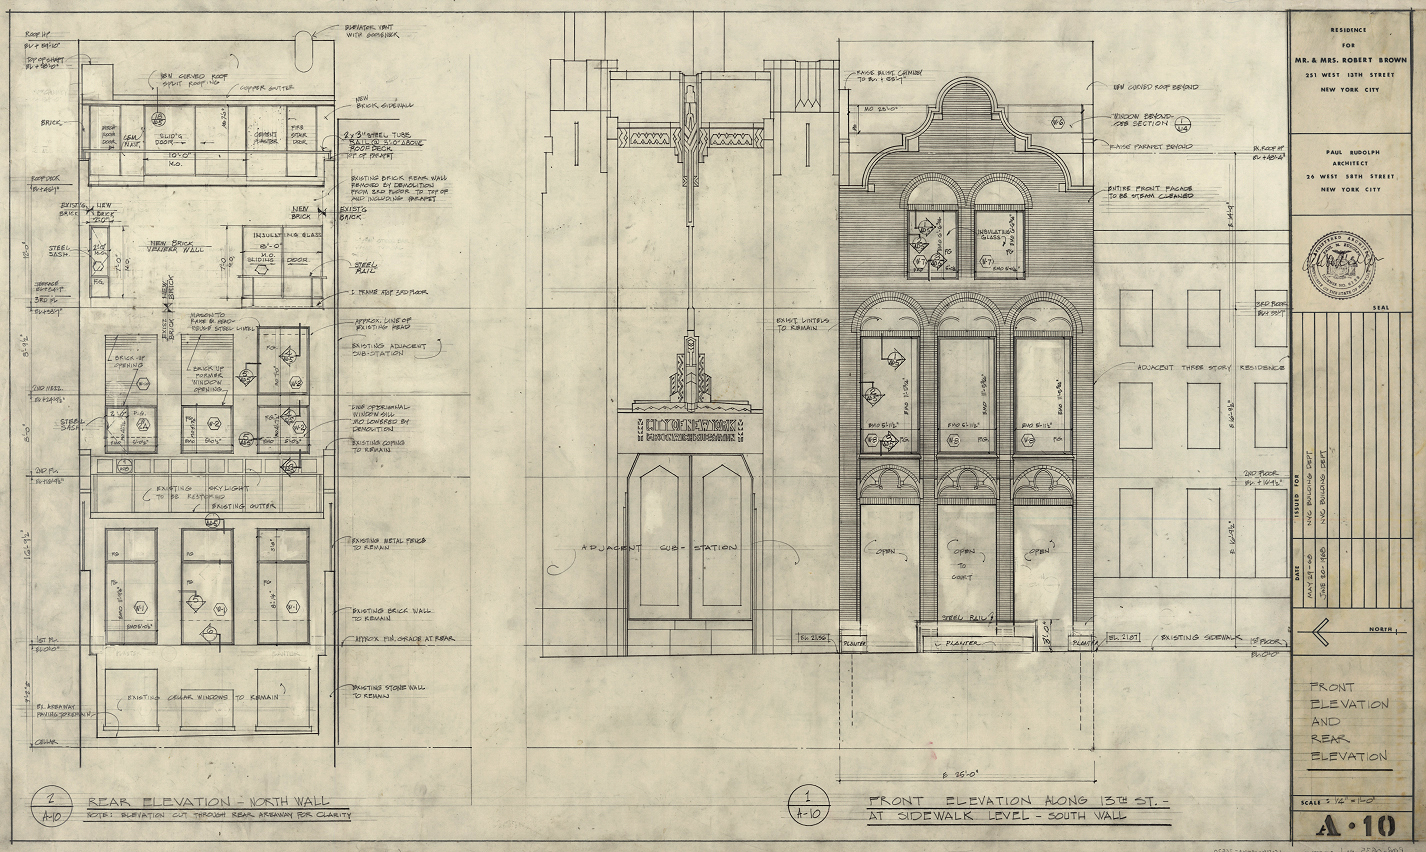 Robert Brown residence, New York City. Front Elevation and Rear Elevation, Sheet A-10.